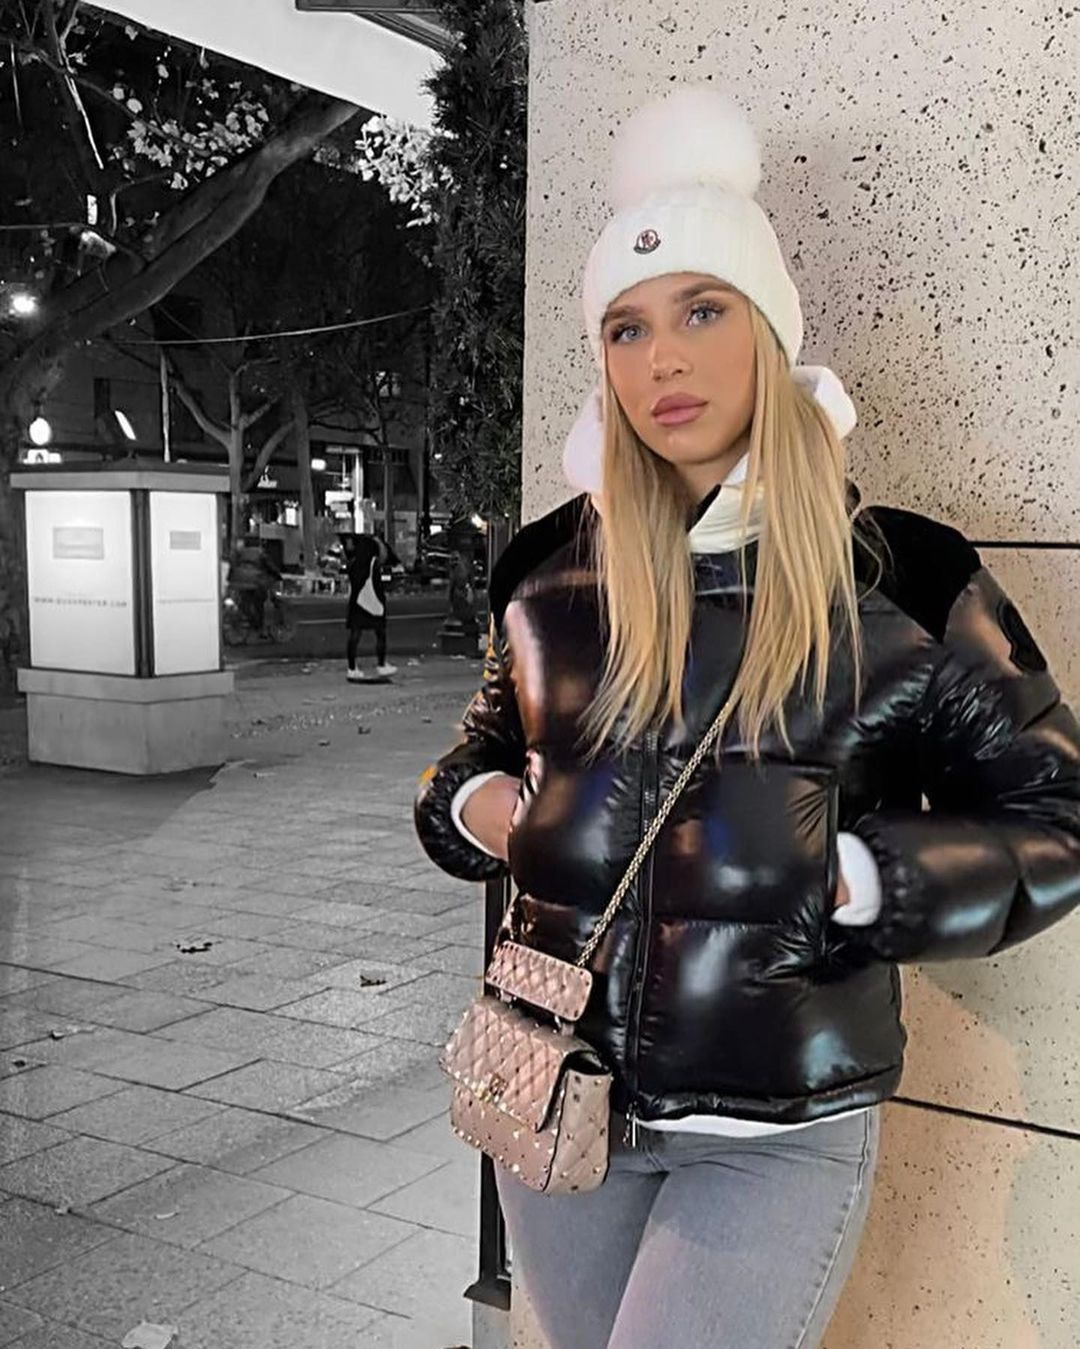 Downjackett S Instagram Post The Beautiful Talkkaafashion In Her Moncler Jacket In 2021 Moncler Jacket Women Puffer Jacket Women Jackets [ 1349 x 1080 Pixel ]